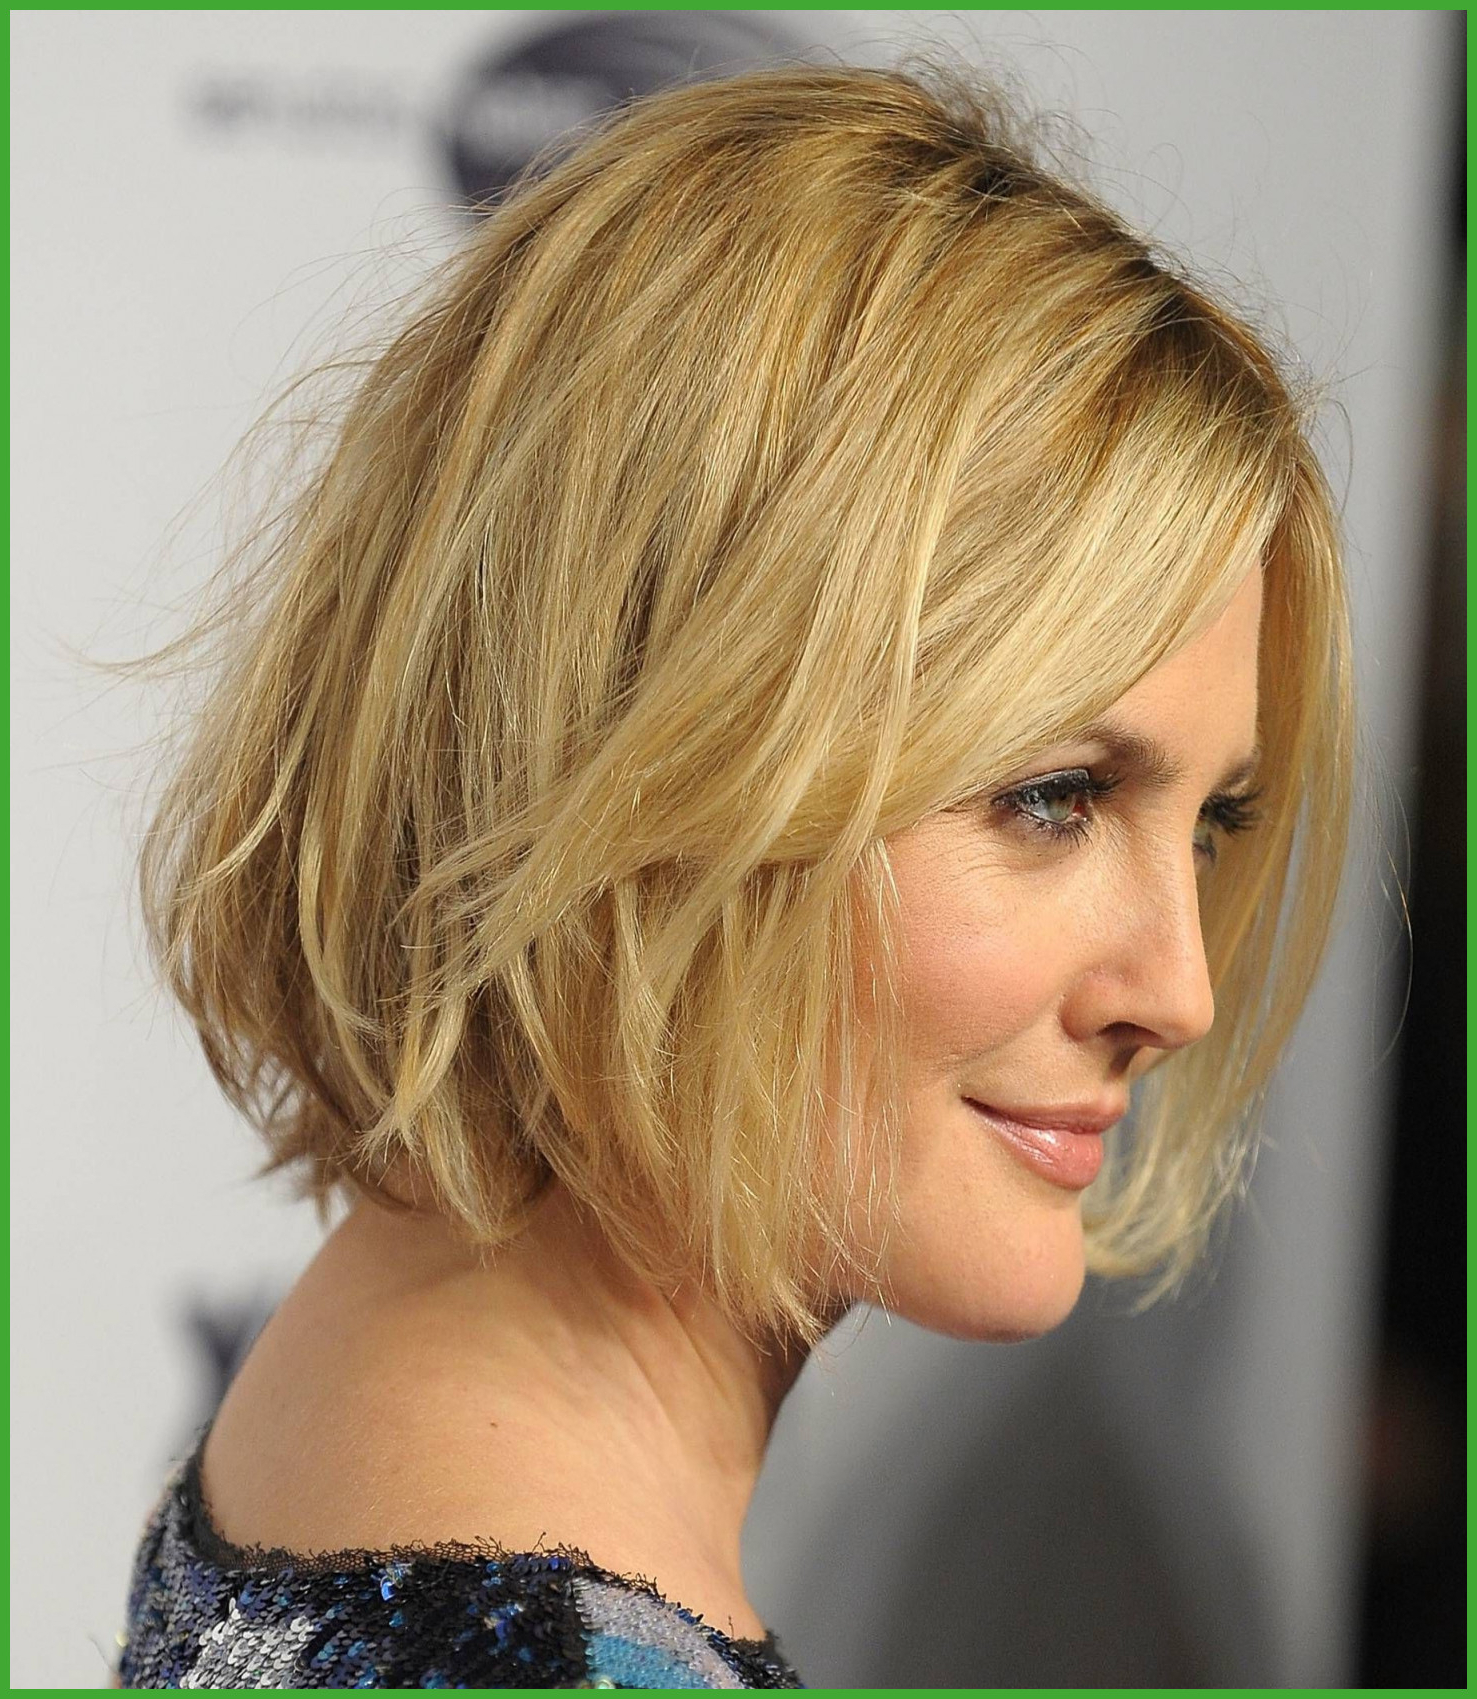 Elegant Short Choppy Hairstyles For Over 60 – Uternity For Short Choppy Layered Bob Haircuts (View 15 of 25)